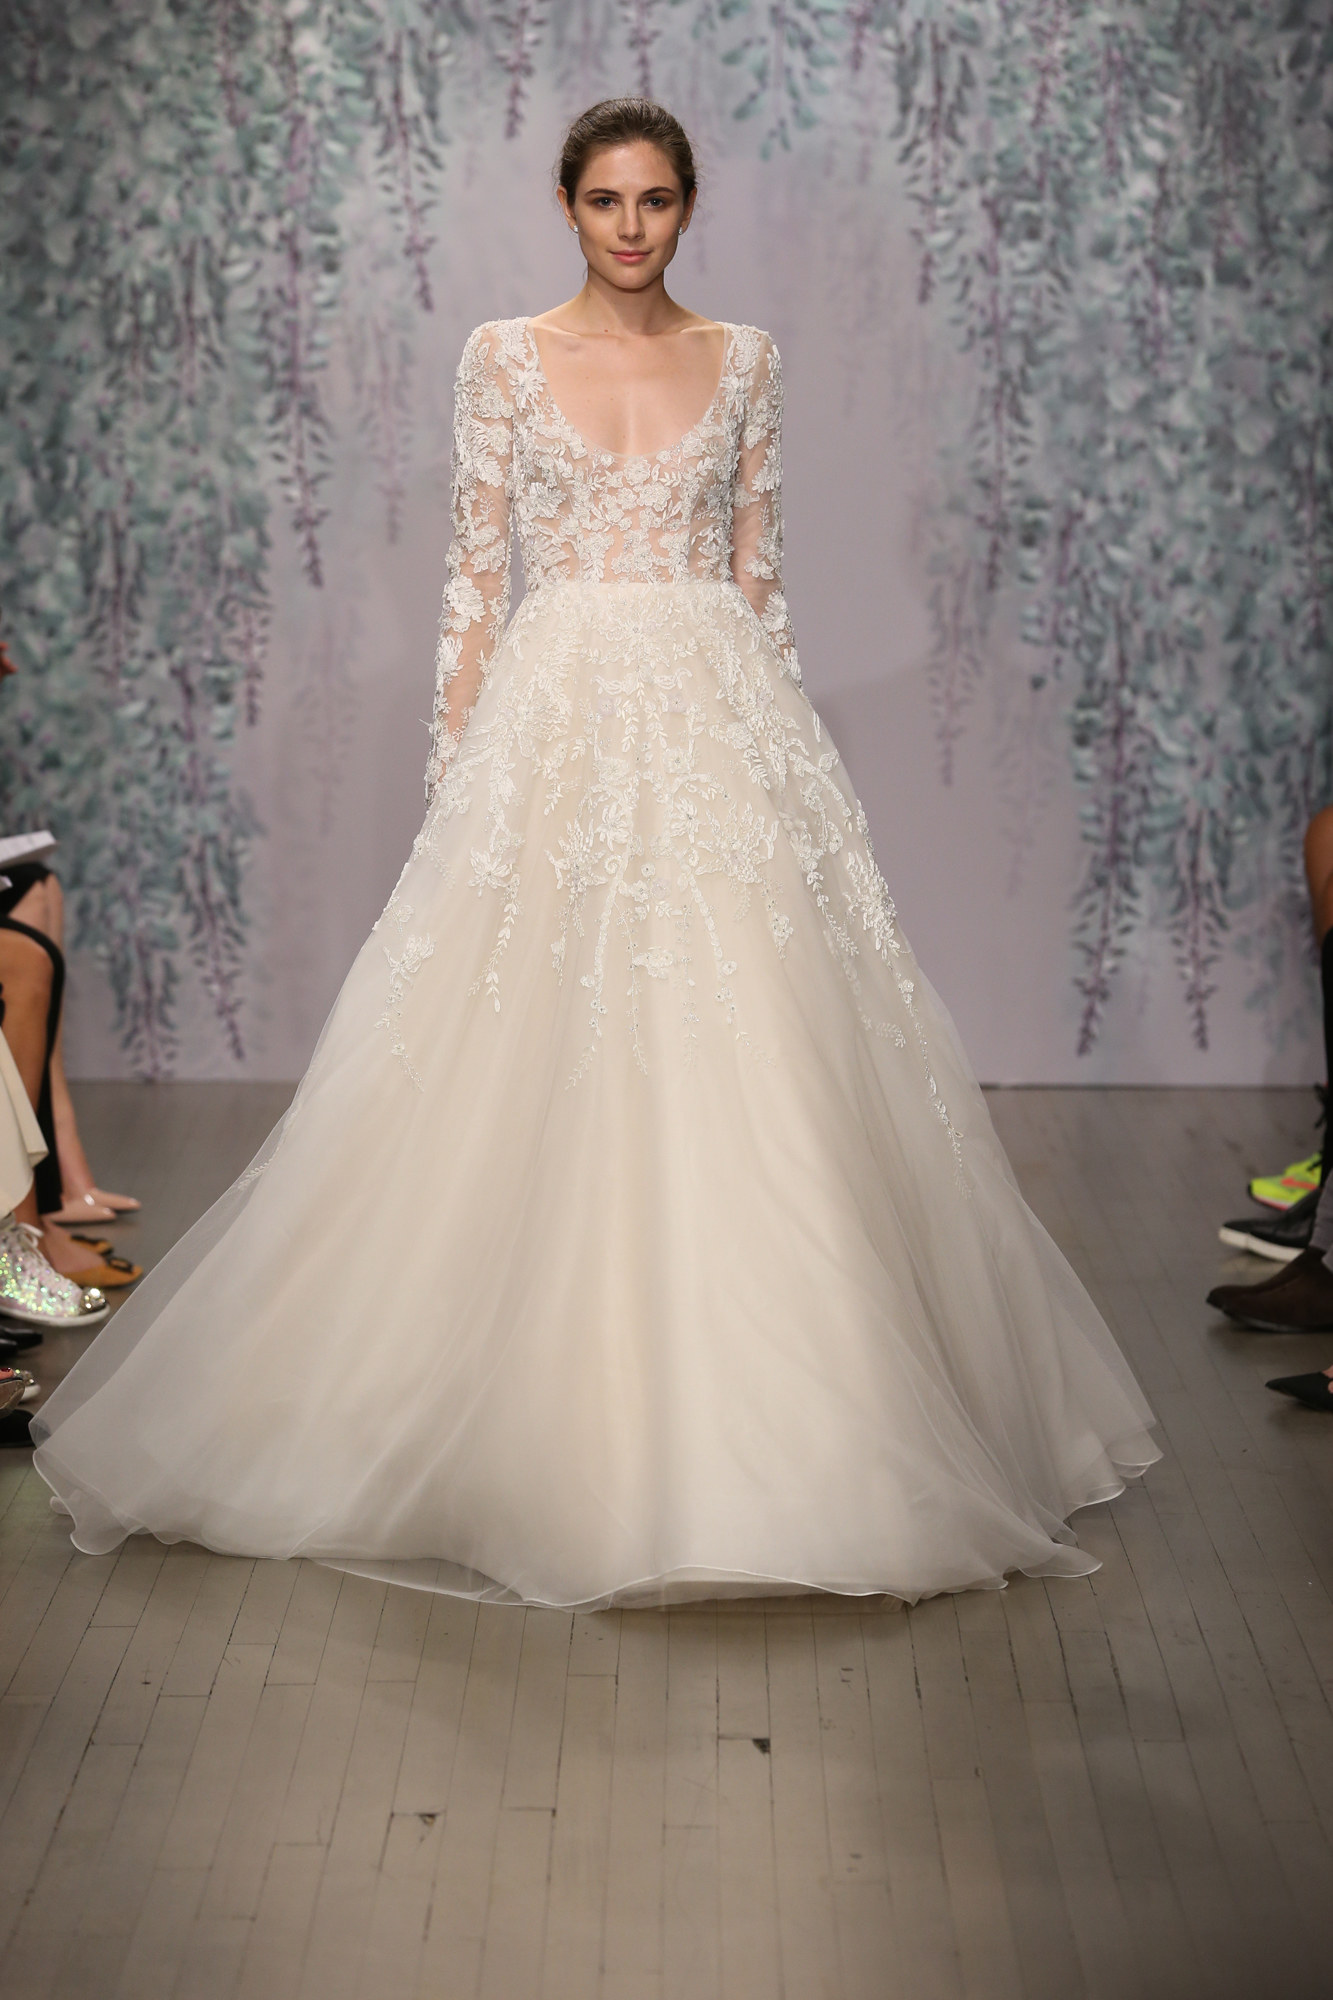 Best wedding dresses top wedding dress designers everafterguide monique lhuillier junglespirit Choice Image